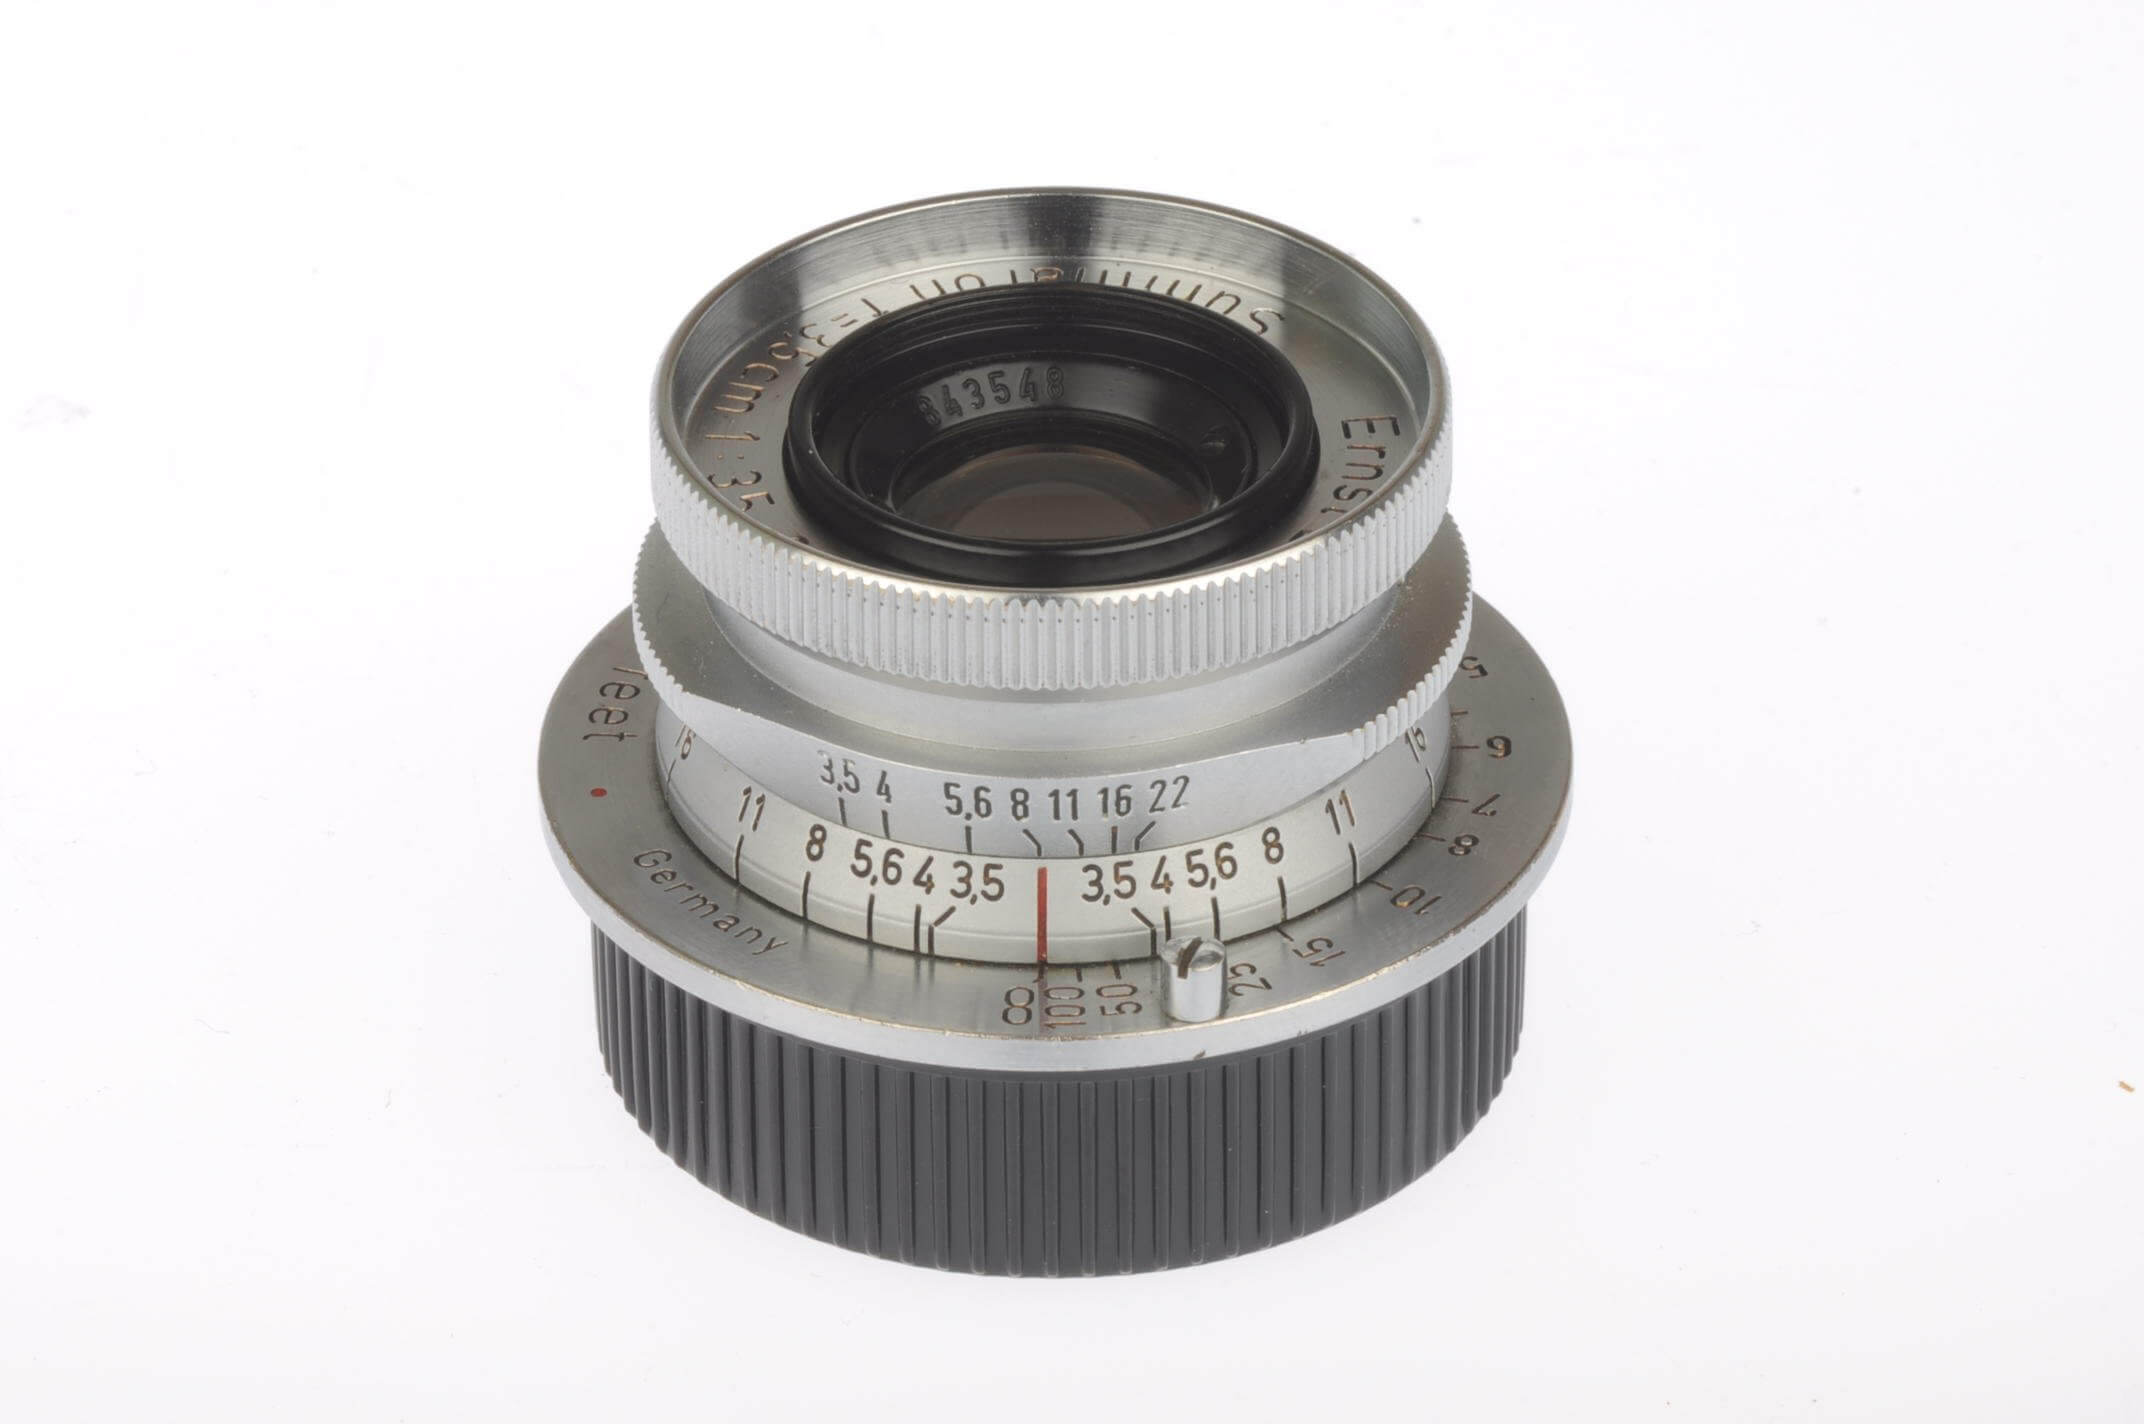 Leica 3.5cm f3.5 Summaron, screw, gorgeous condition!